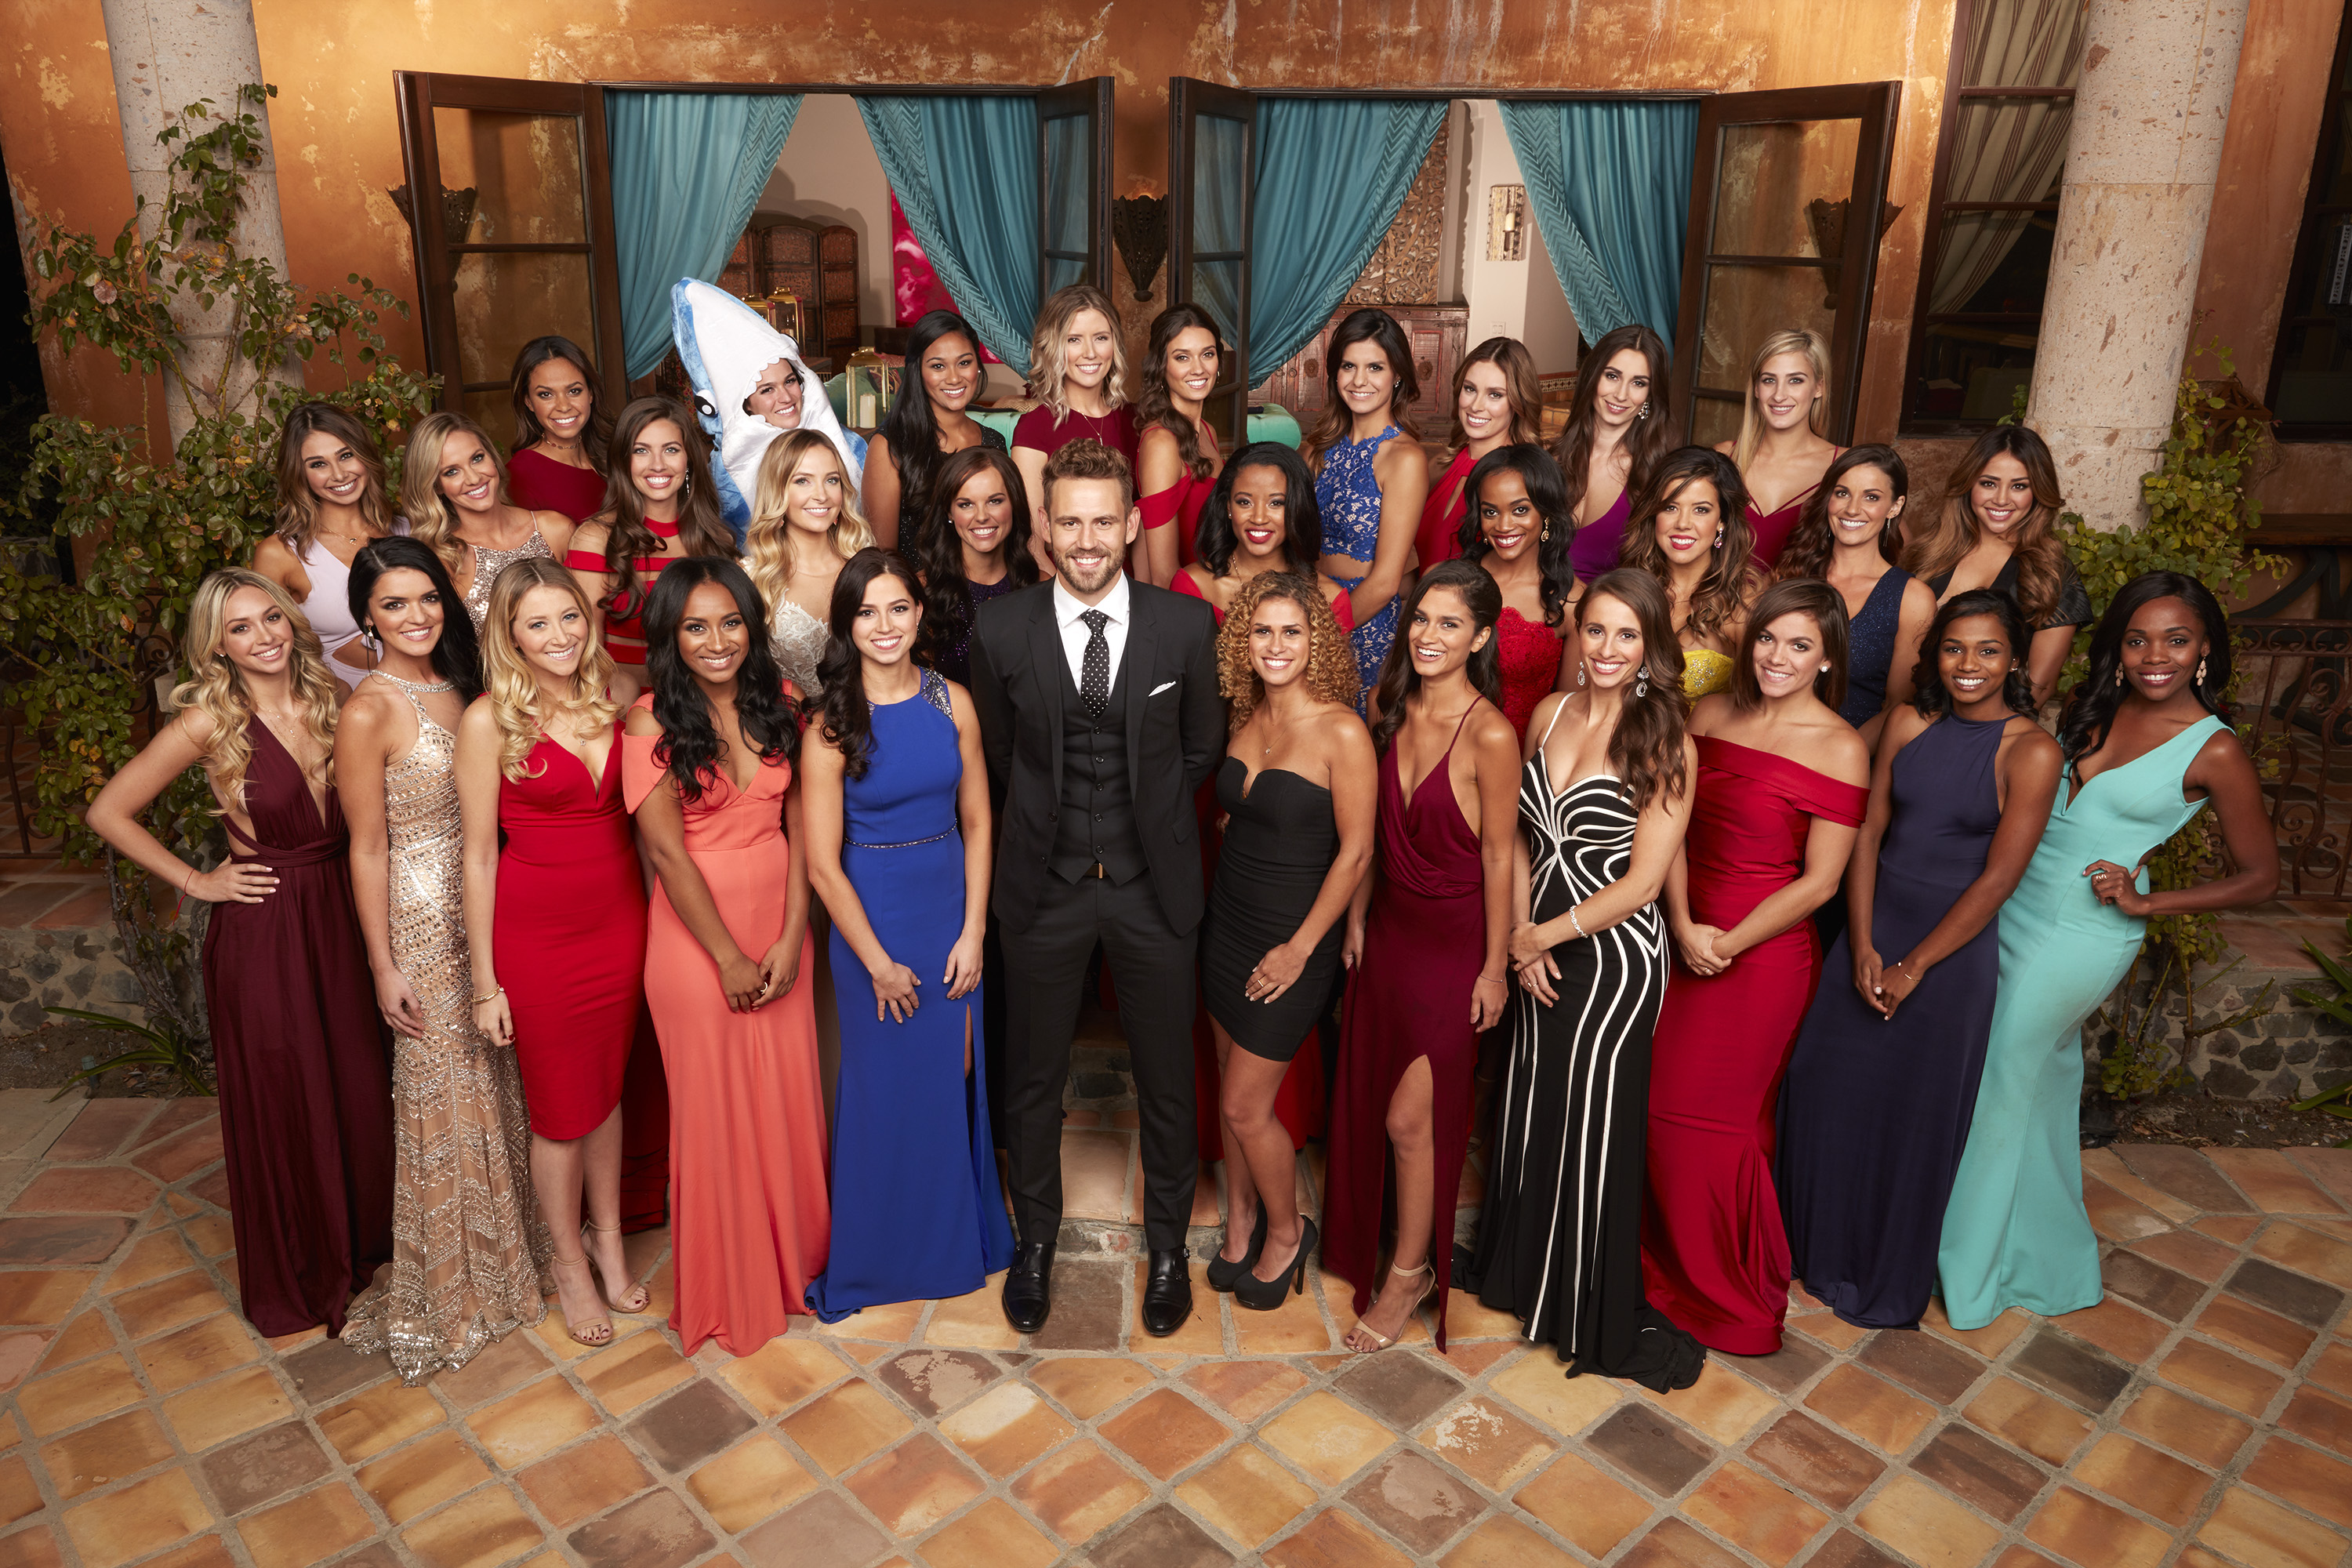 Lovely Fourth Timeu0027s The Charm For The Next Bachelor, Handsome Software Salesman  Nick Viall, And Now We Finally Get To See The 30 Ladies Who Will Make Up  The ... Design